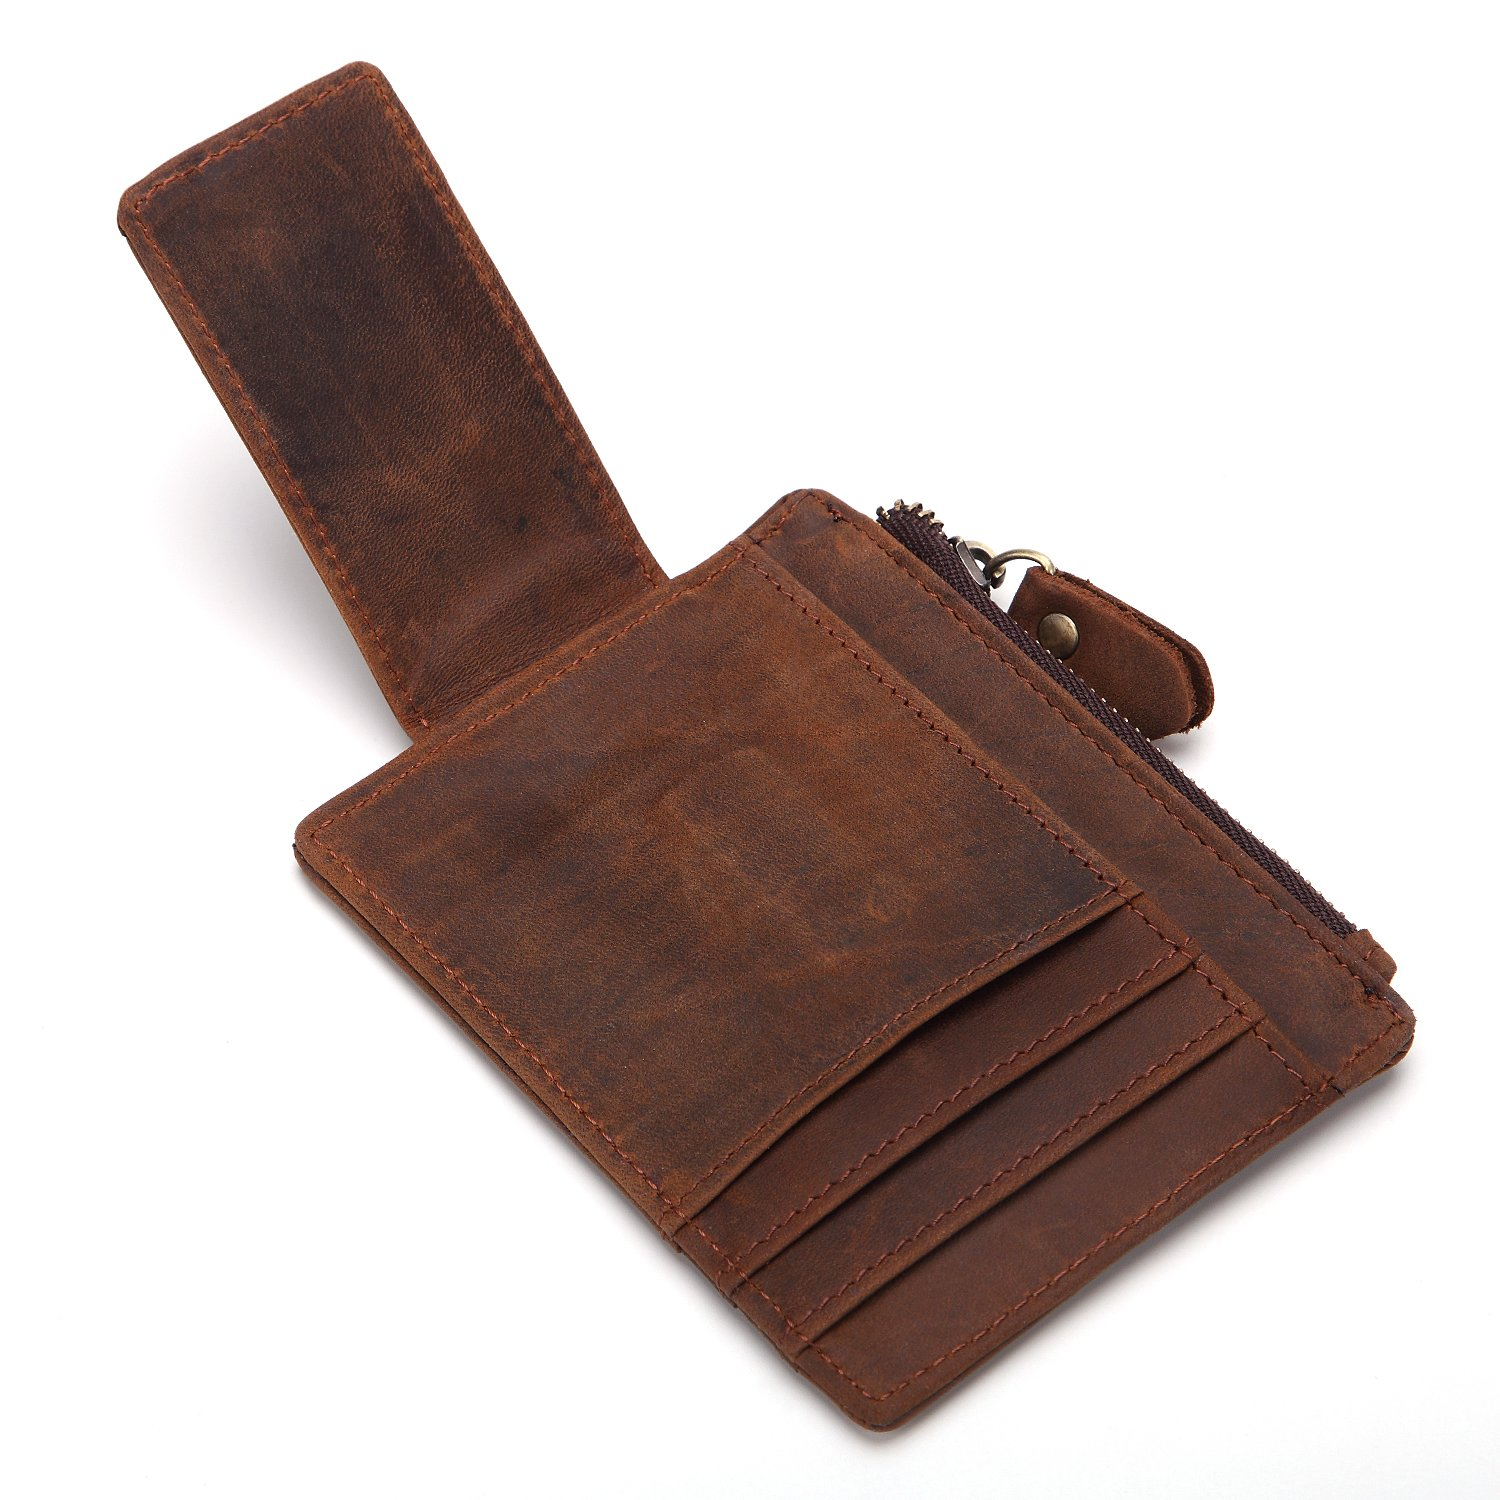 Leather card holder RFID card holder mens bag multi-function coin purse